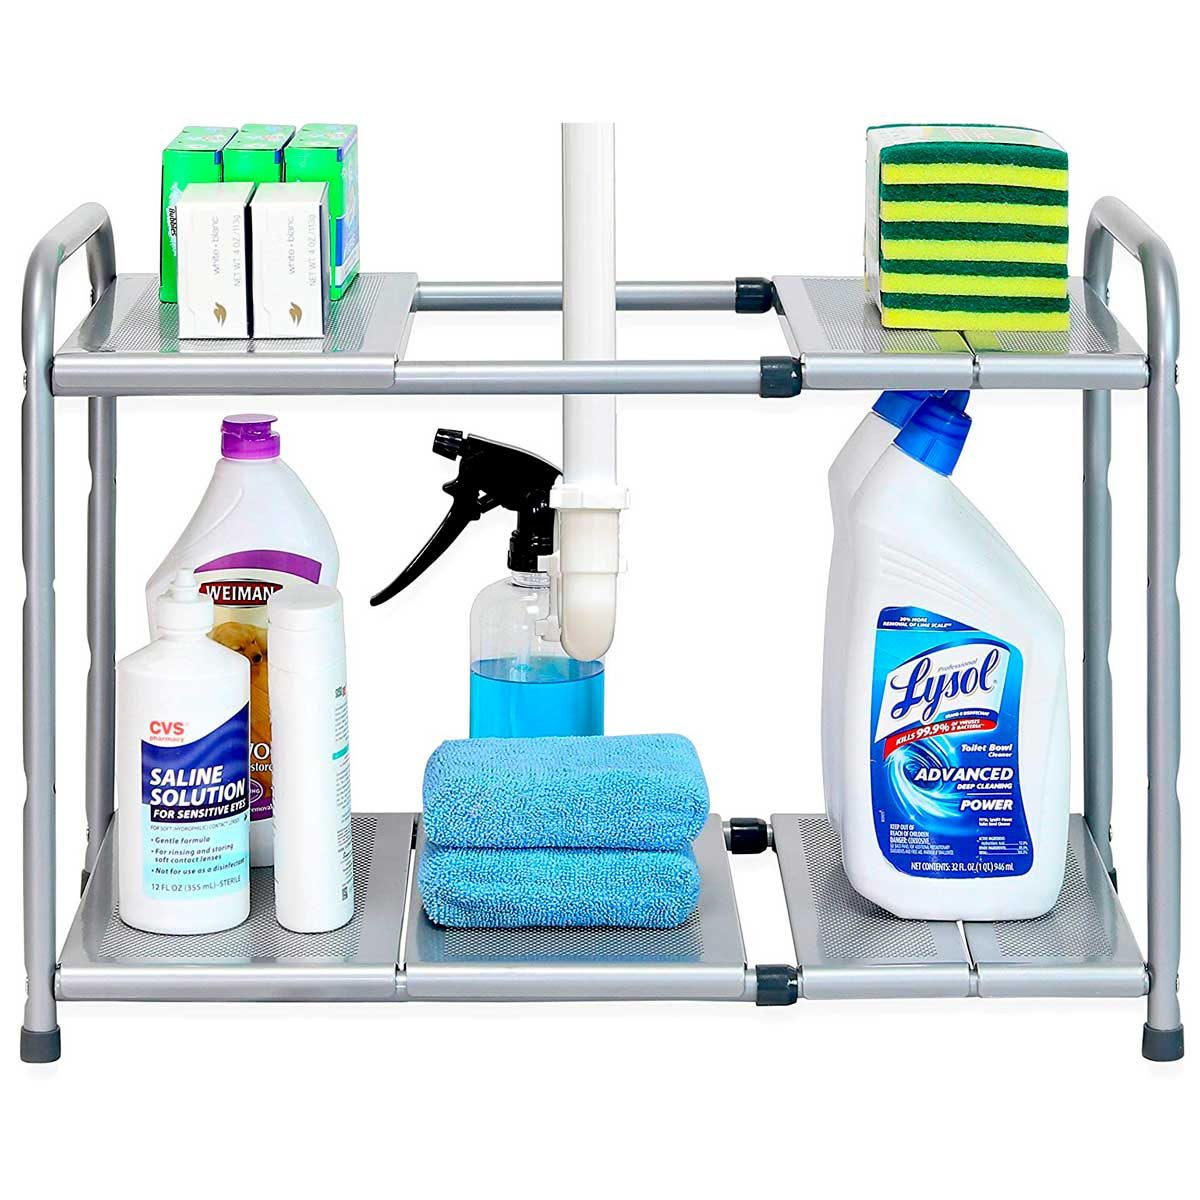 two-tier shelf rack